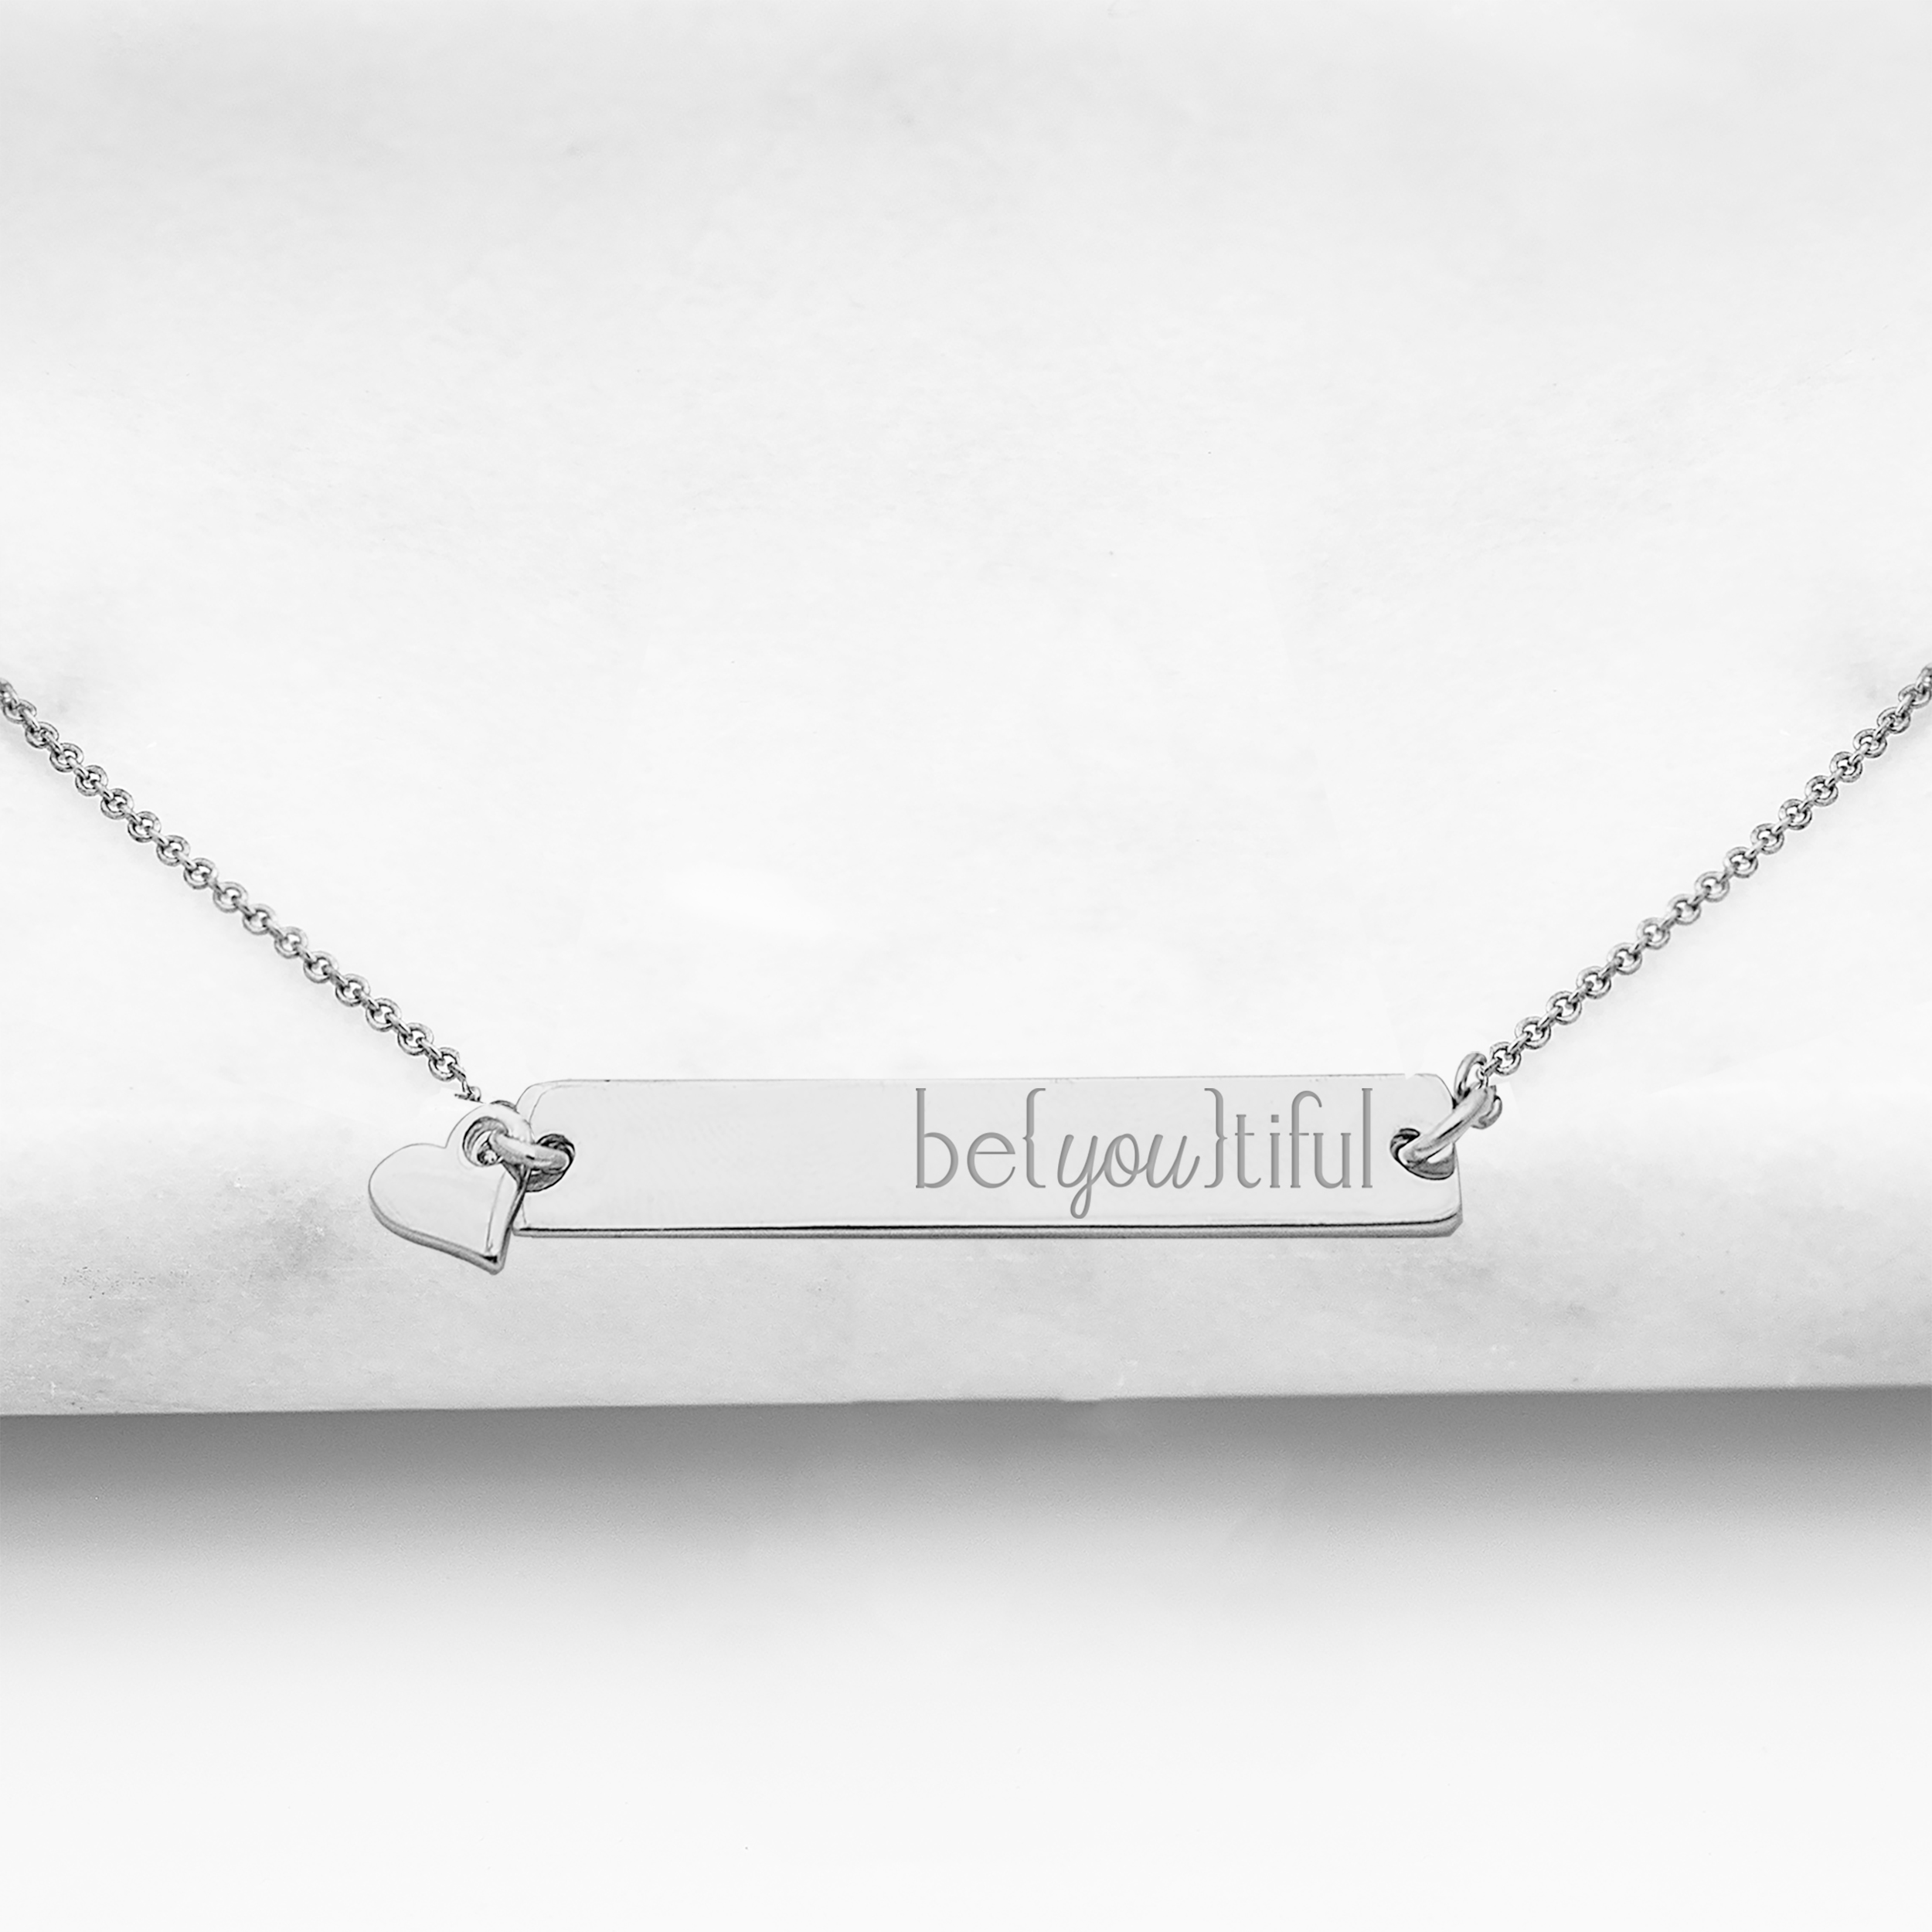 Cathys Concepts U-N9105S-BE Beyoutiful Silver Horizontal Bar Necklace